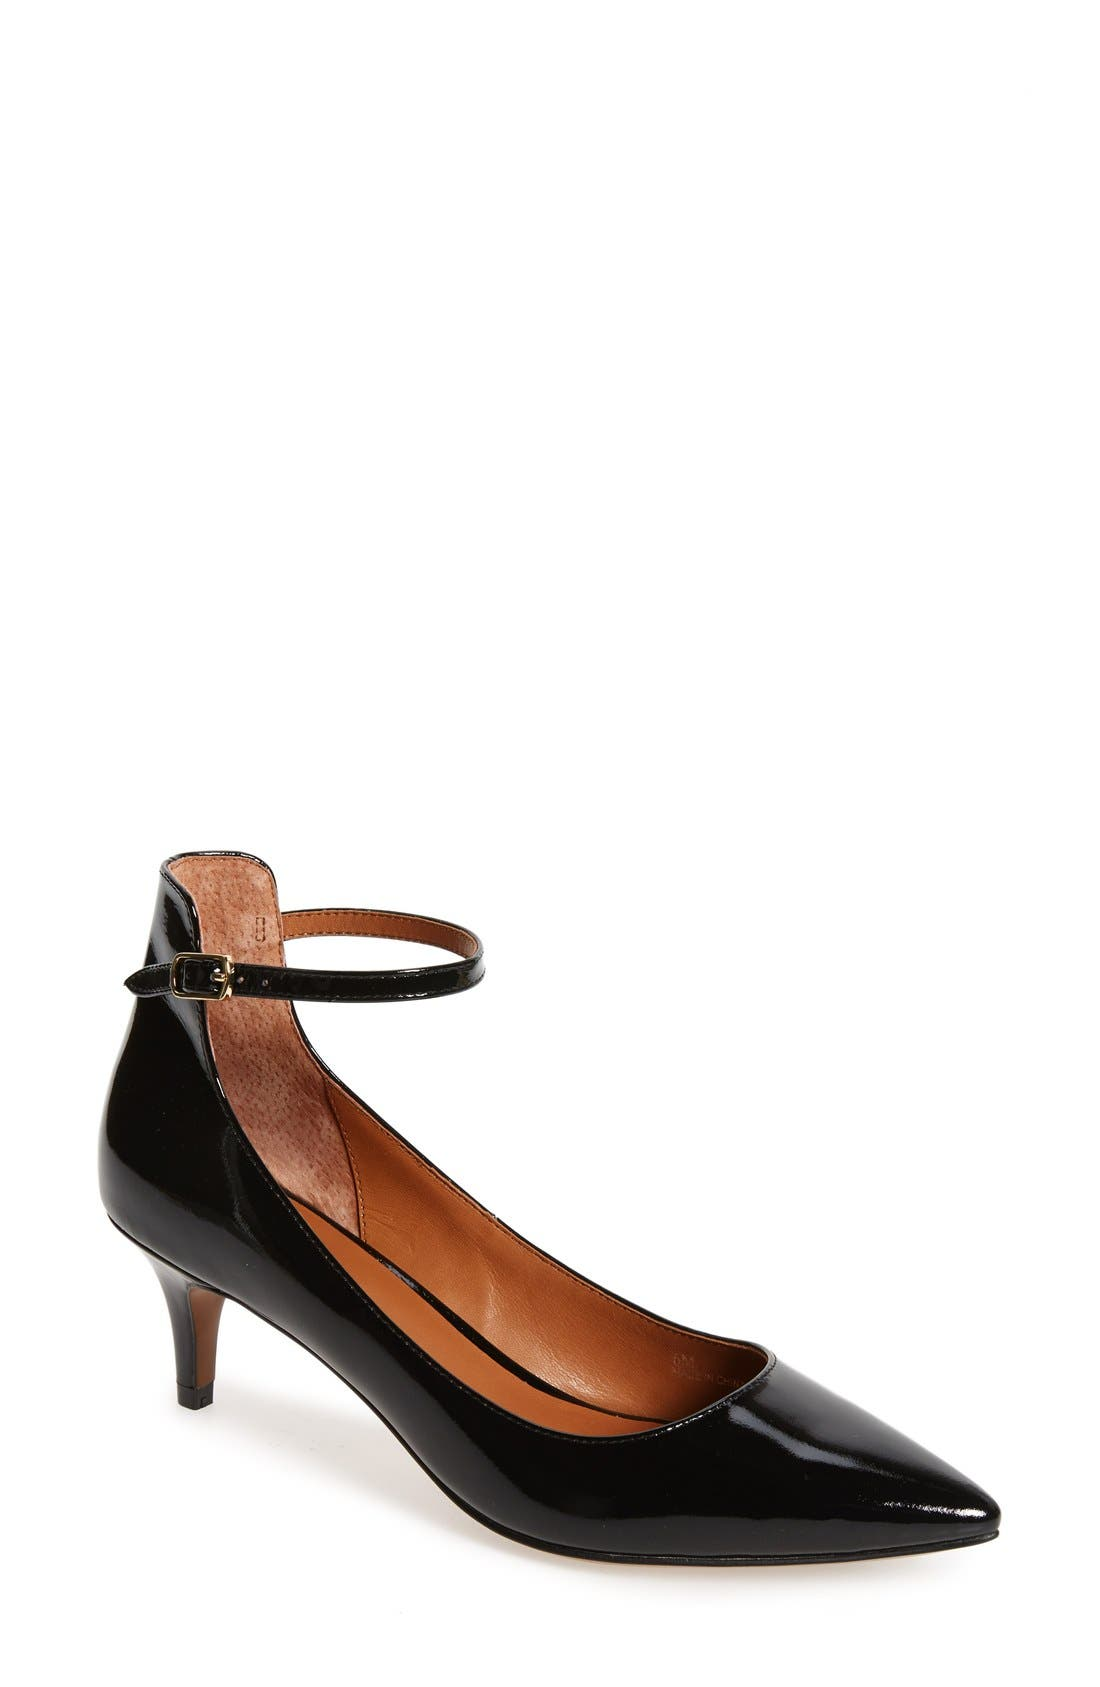 'Cutie' Ankle Strap Pointy Toe Pump,                         Main,                         color, Black Patent